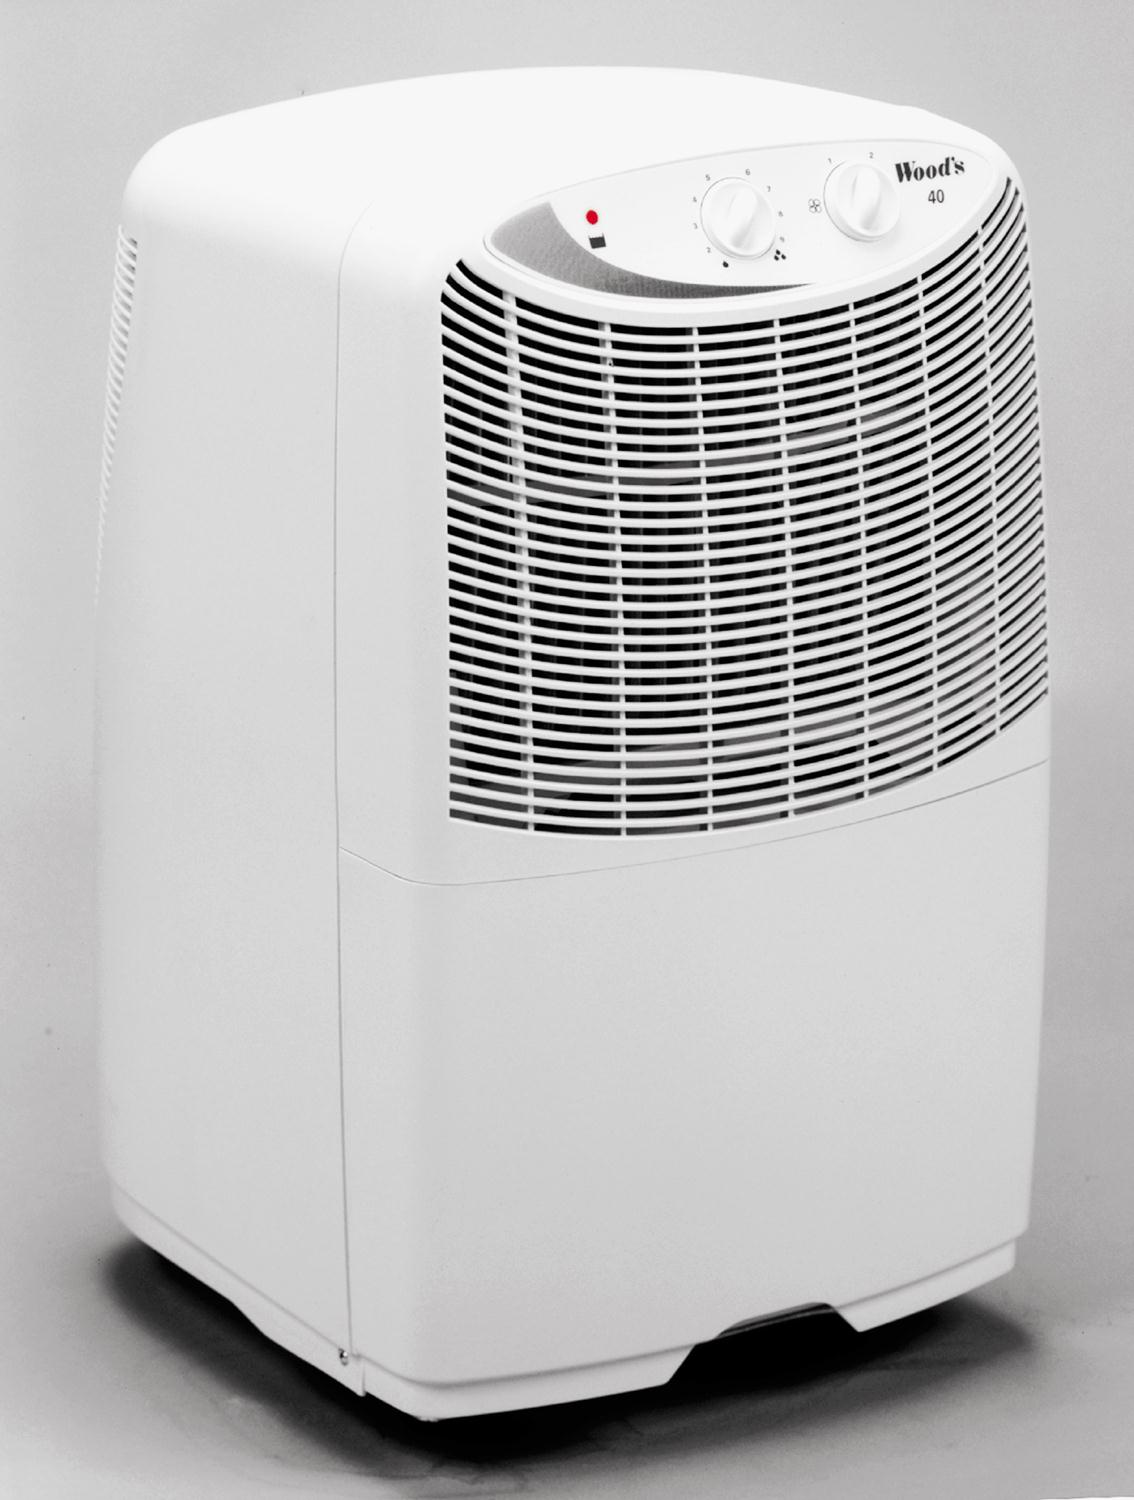 Consumers should stop using the recalled dehumidifiers and destroy and  #B9121F